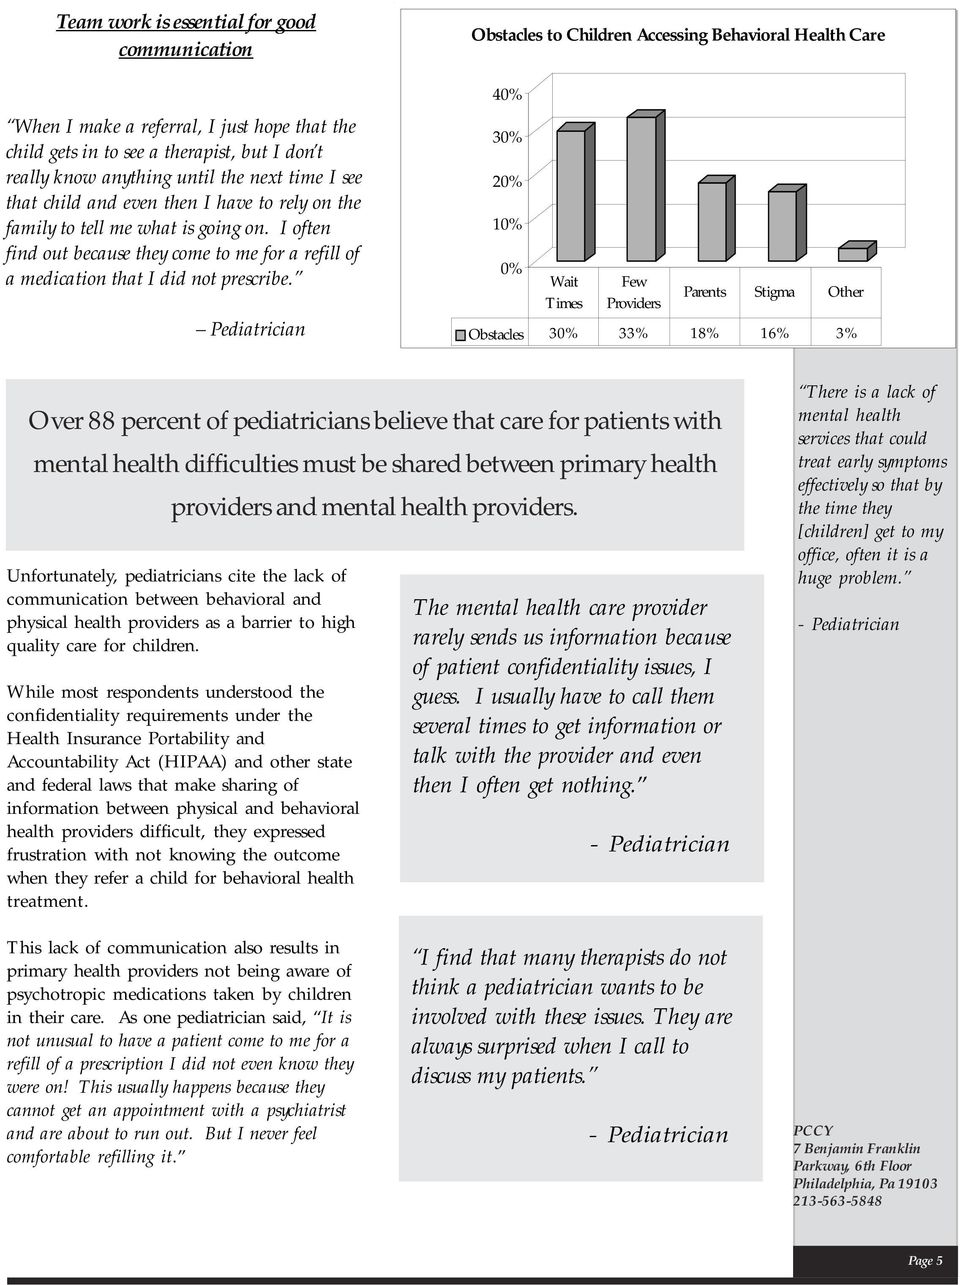 Pediatrician Obstacles to Children Accessing Behavioral Health Care 40% 30% 20% 10% 0% Wait Times Few Providers Parents Stigma Other Obstacles 30% 33% 18% 16% 3% Over 88 percent of pediatricians